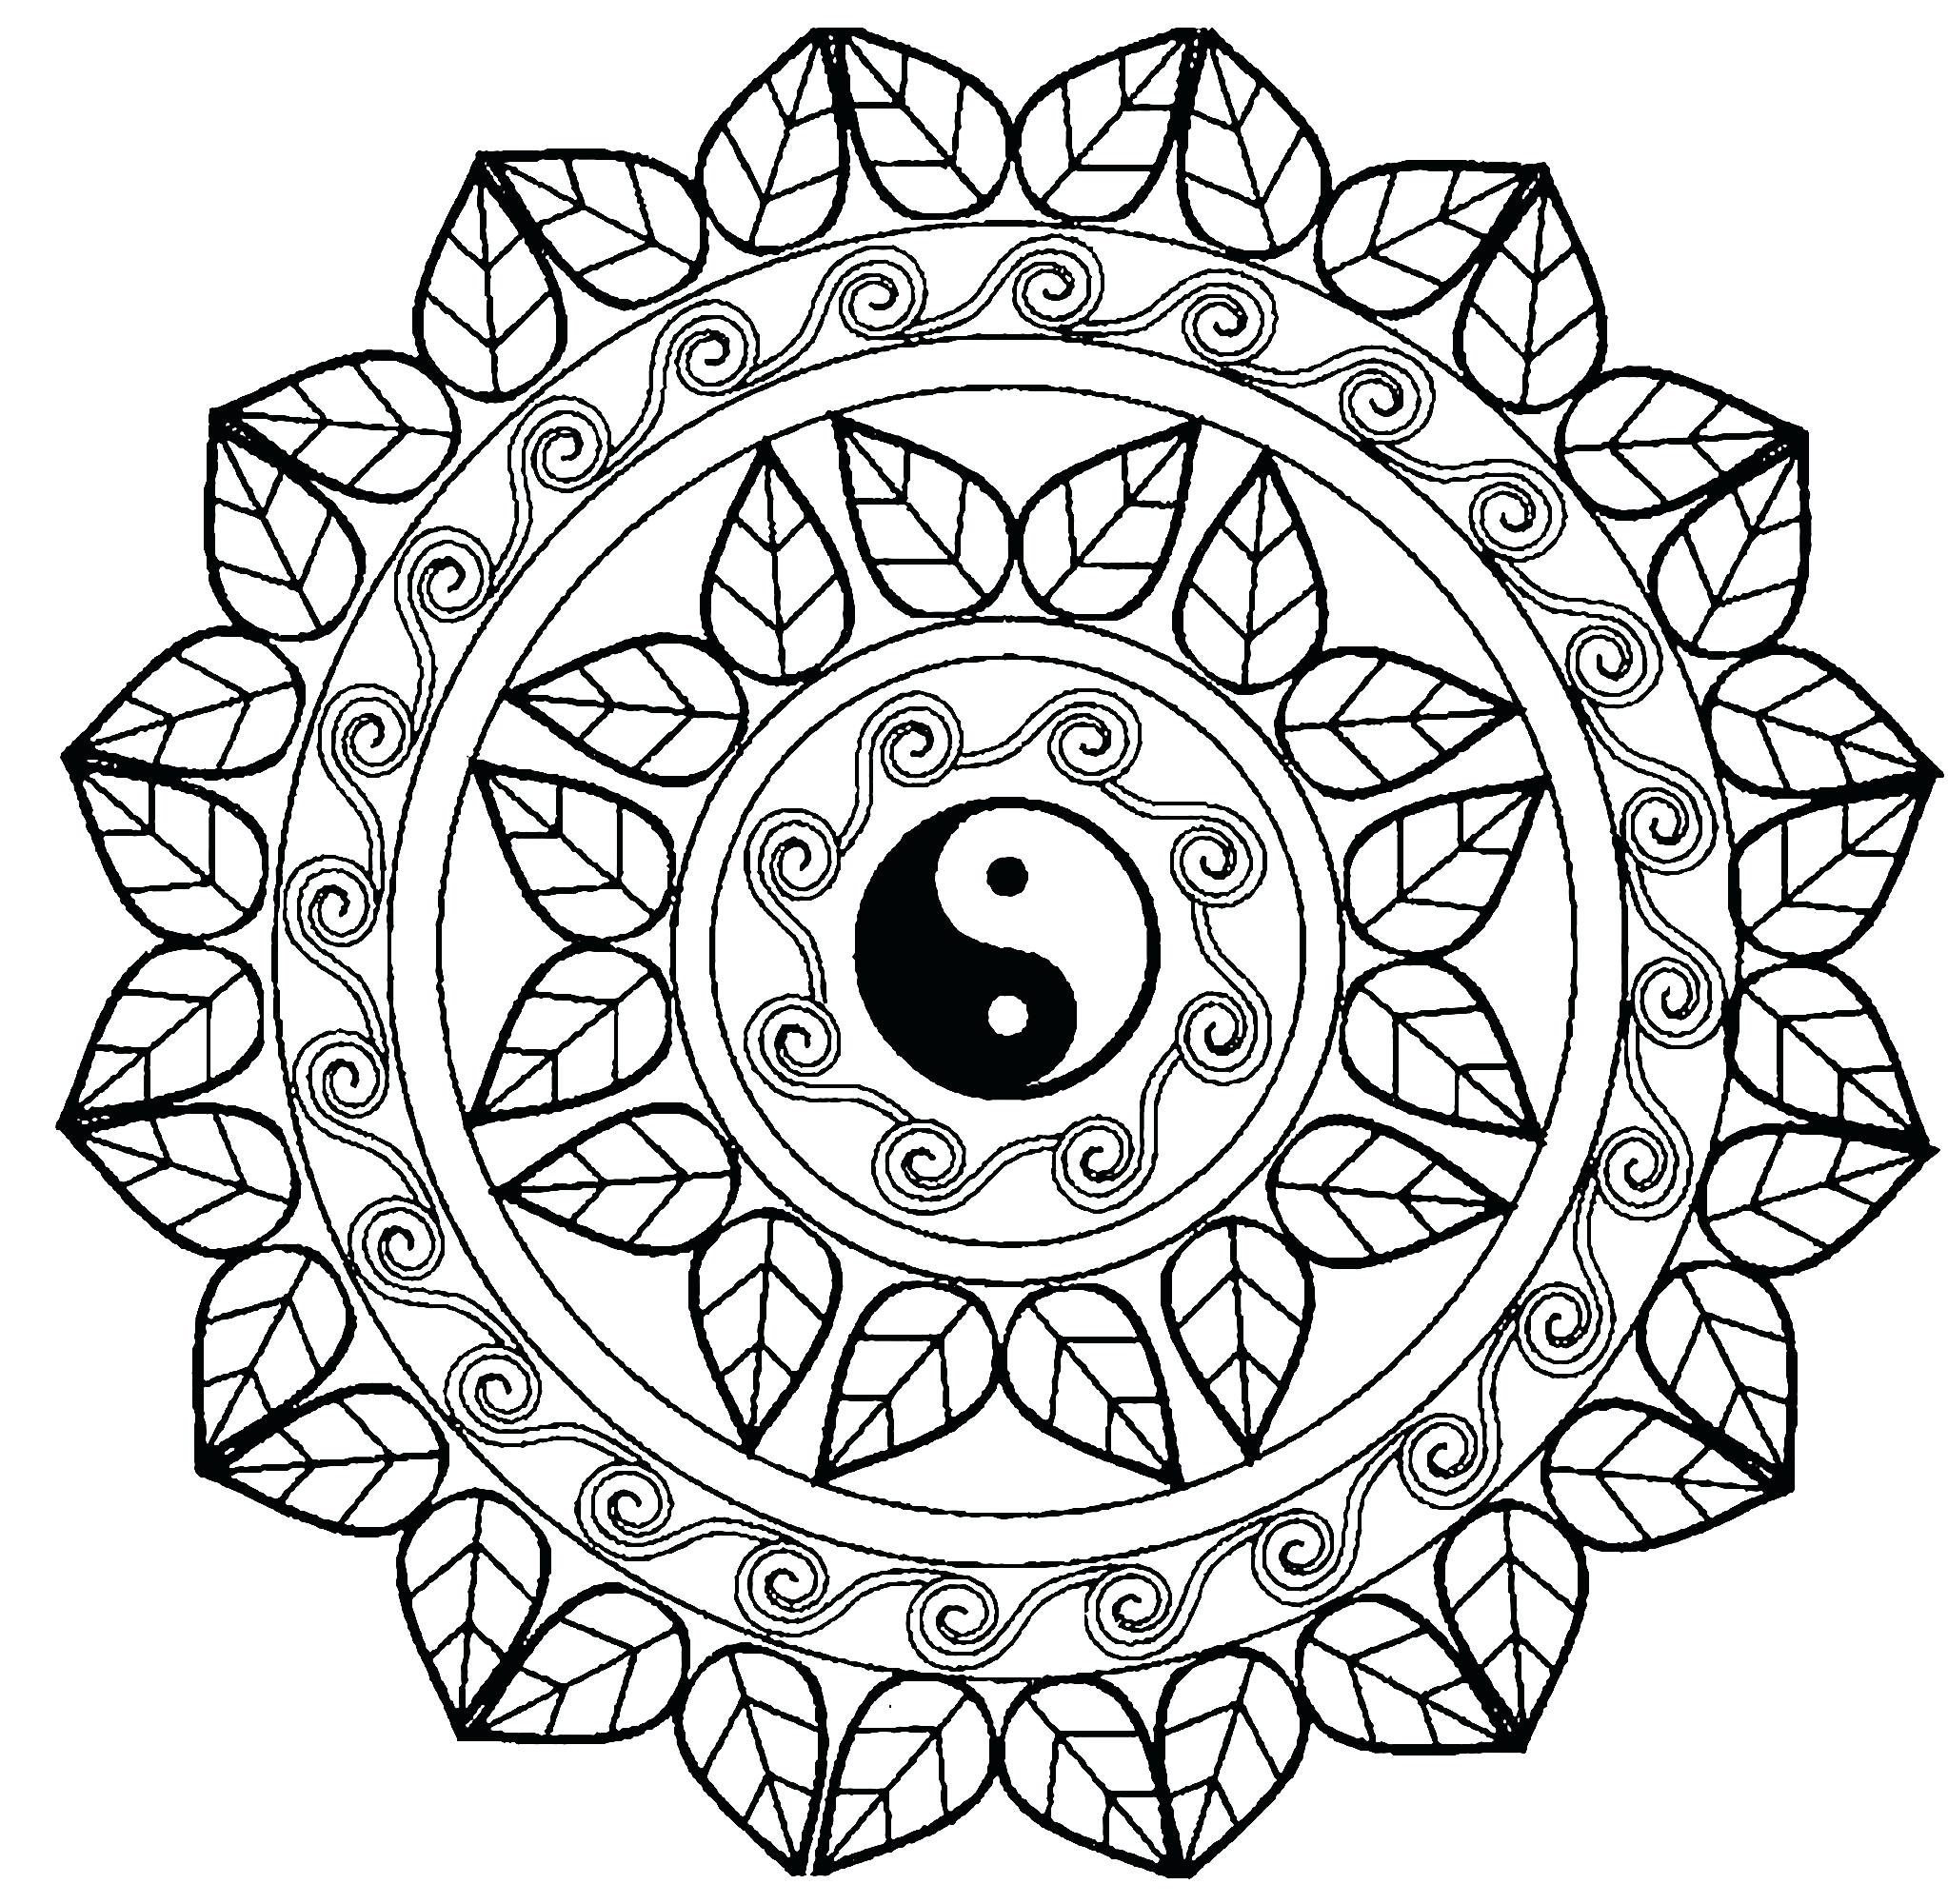 2046x2000 Fresh Mandala Coloring Pages Advanced Level Collection Printable